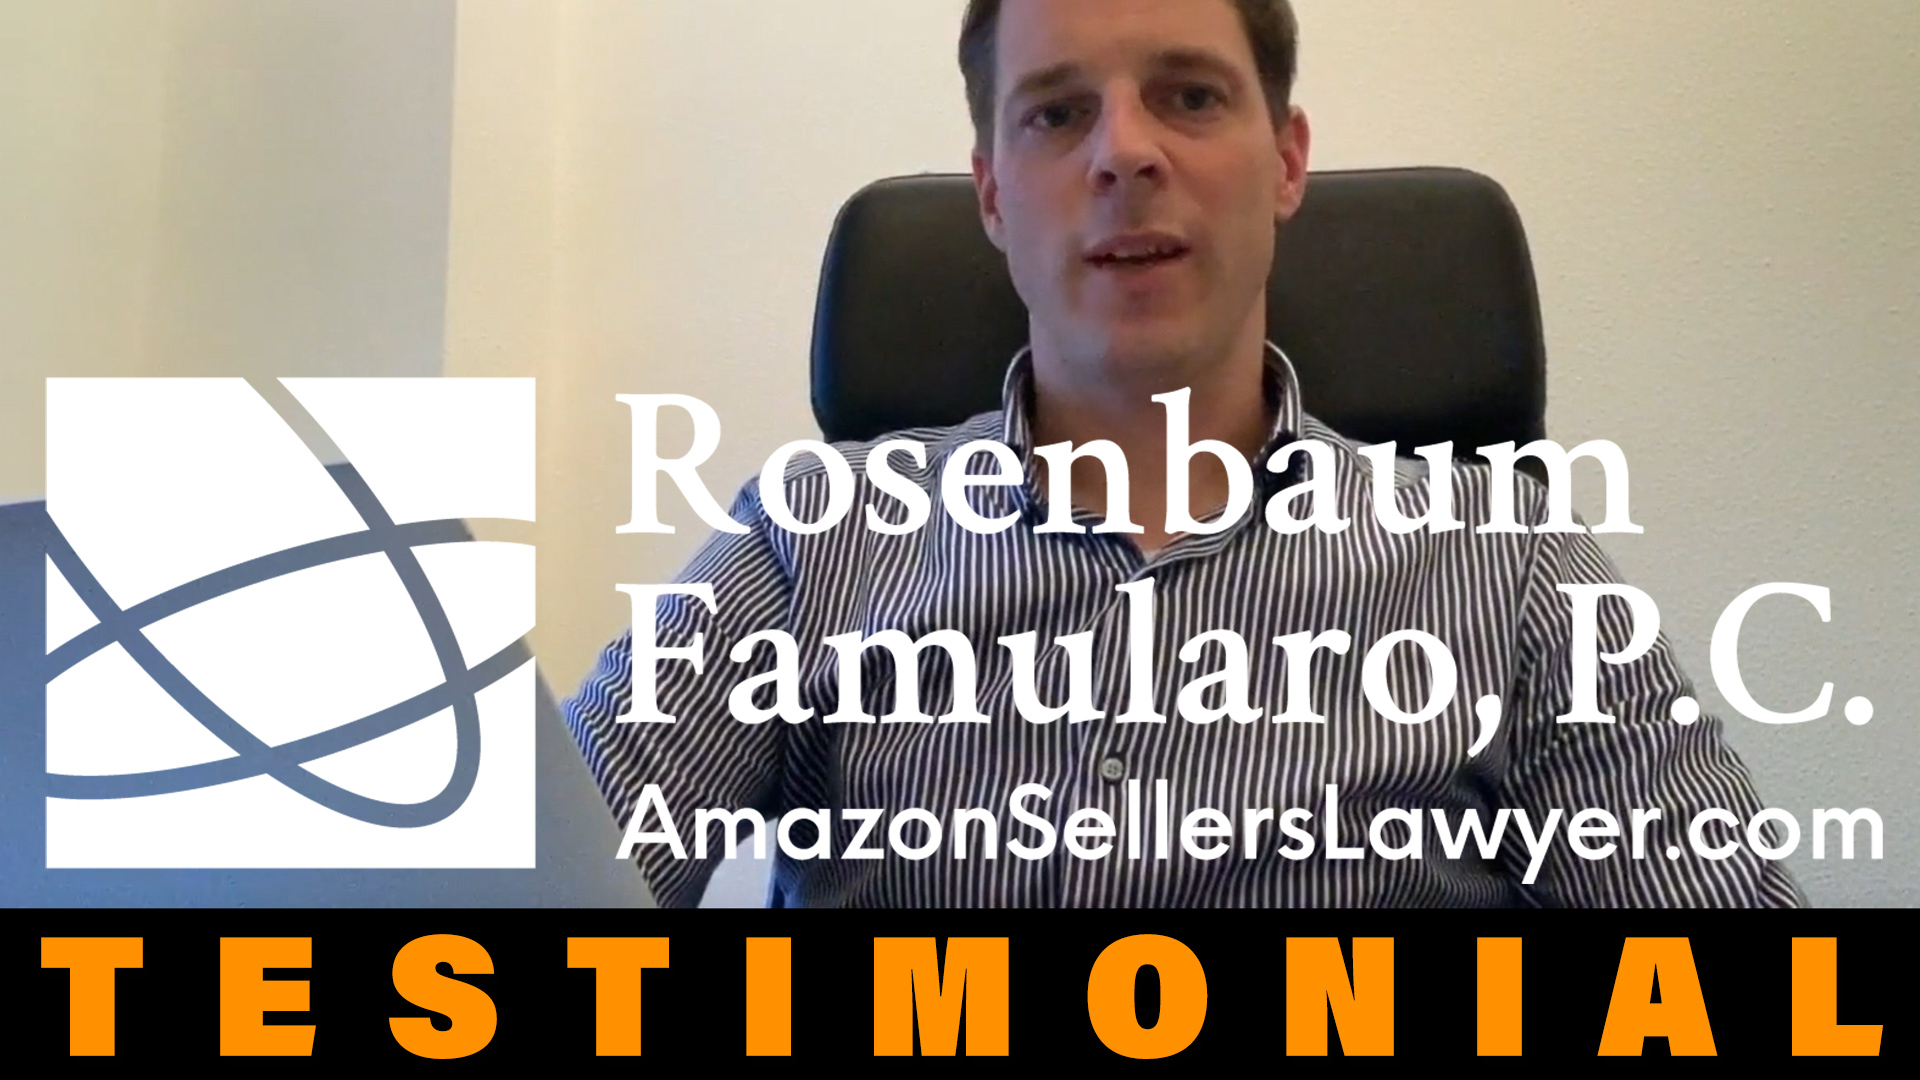 CJ Helped Solve Problem with European Amazon Account